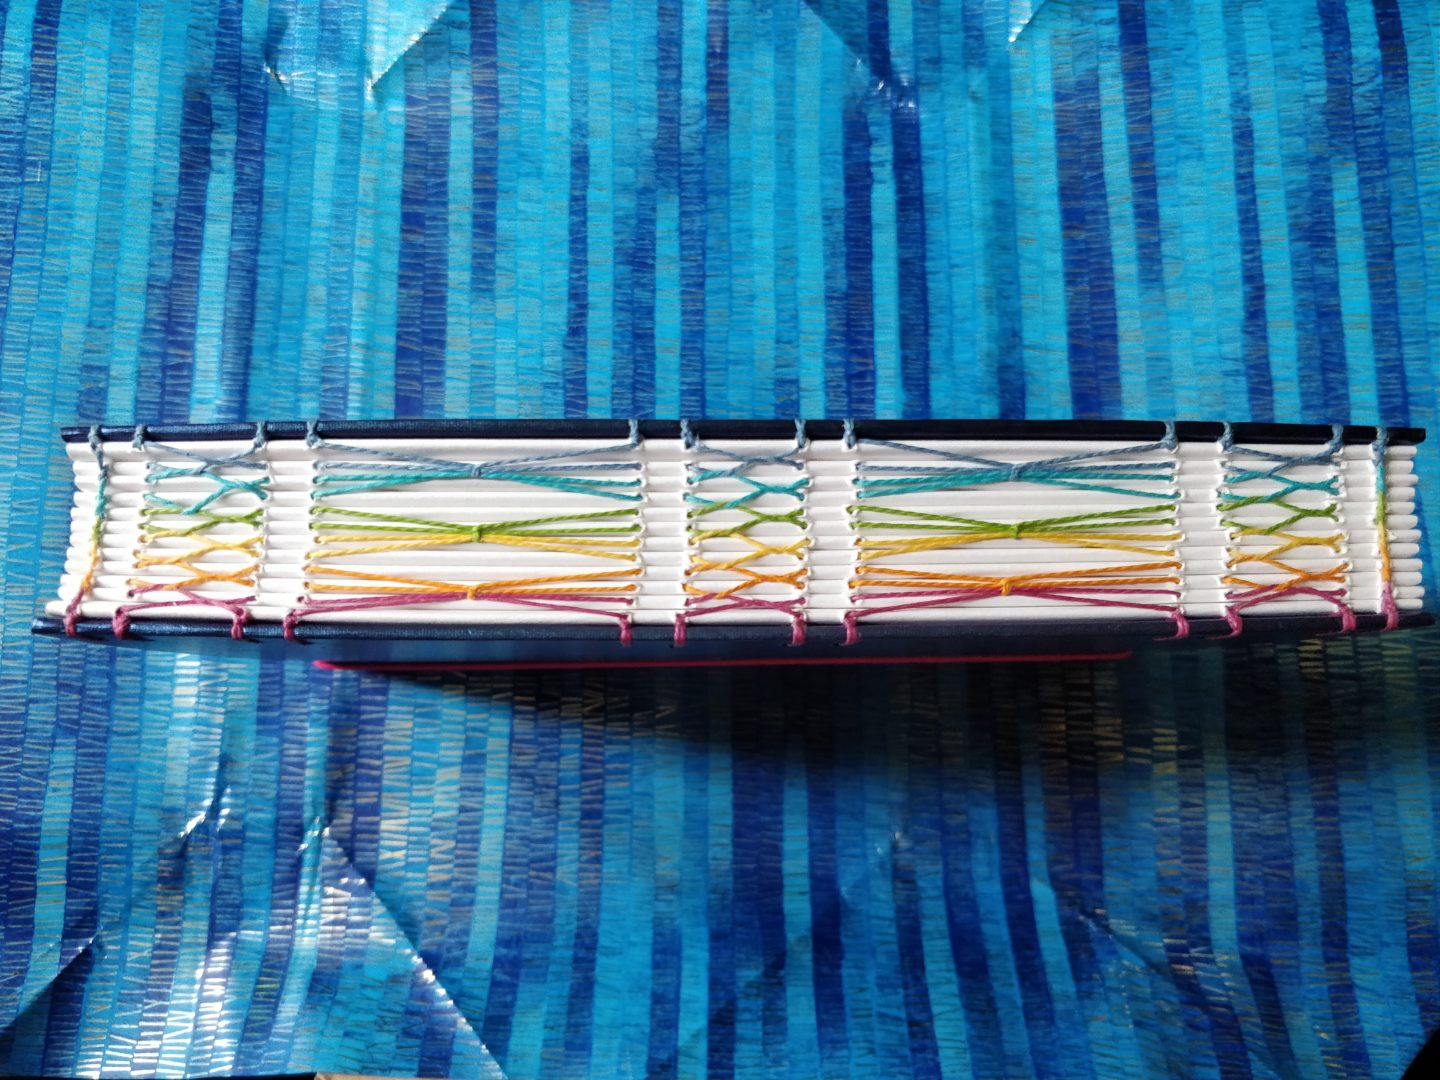 Avalon Rainbow Notebook from The Citrus Book Bindery Rainbow Stitching on Spine